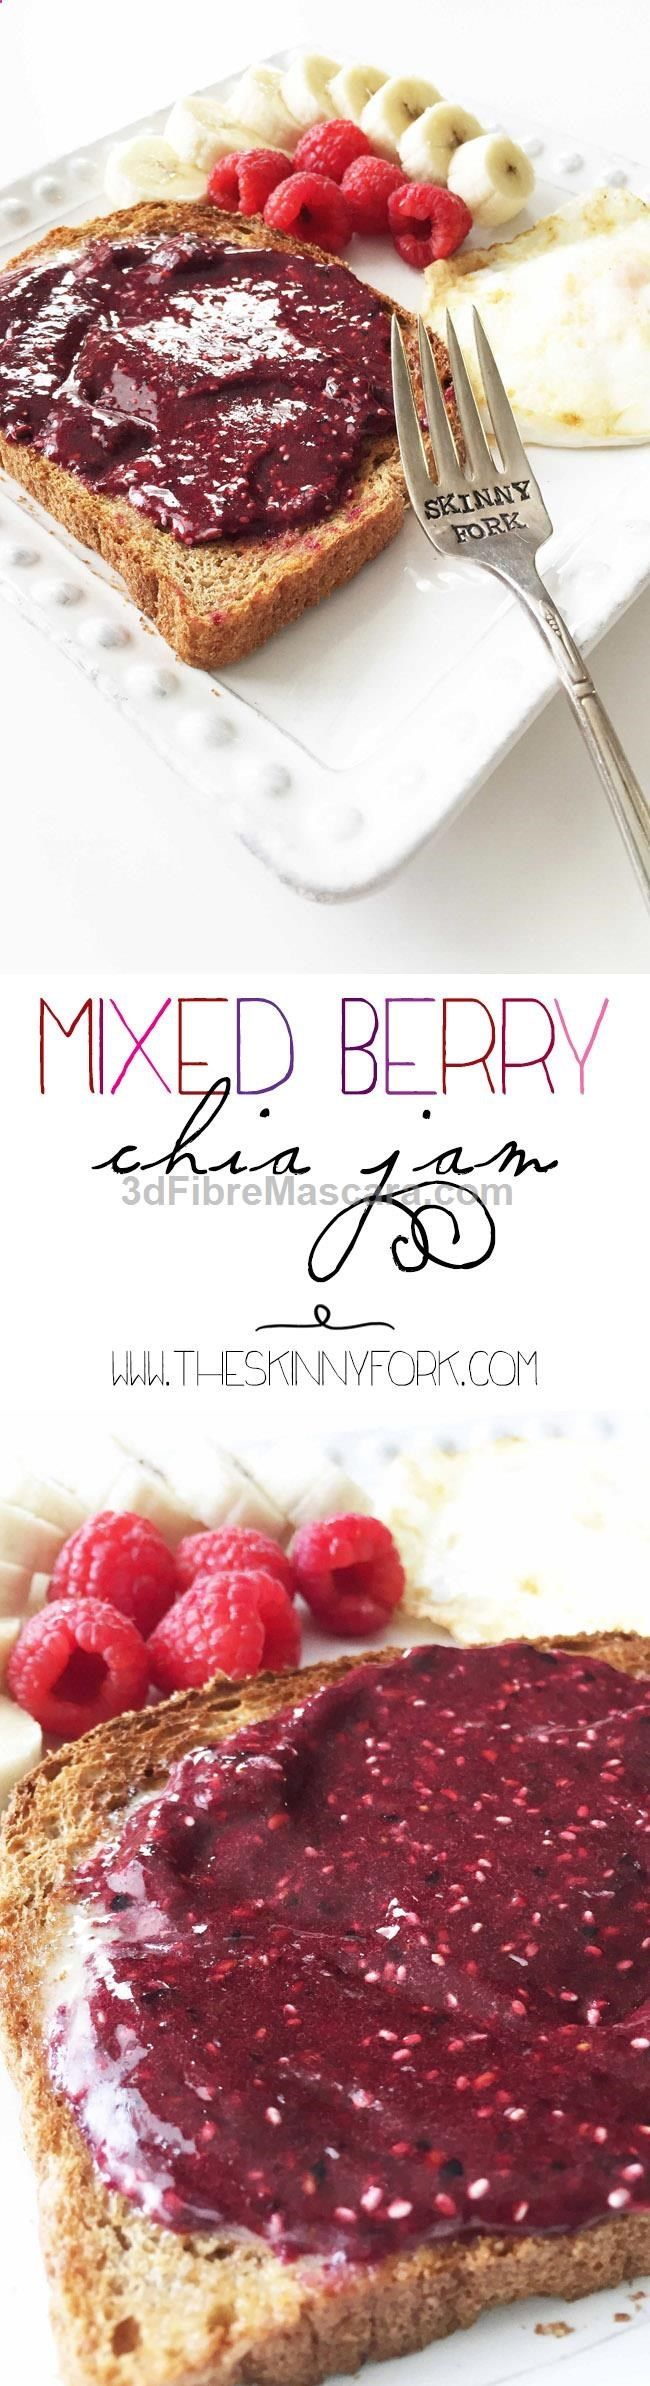 Are you excited for the Minions movie release? Make my Mixed Berry Chia Jam for your Minions movie night! It's gluten free, sugar free, pectin free, vegan, and super delicious! Plus, it's so easy the kids can help make it! TheSkinnyFork.com #MinionsMovieNight #Ad #dogwalking #dogs #animals #outside #pets #petgifts #ilovemydog #loveanimals #petshop #dogsitter #beast #puppies #puppy #walkthedog #dogbirthday #pettoys #dogtoy #doglead #dogphotos #animalcare